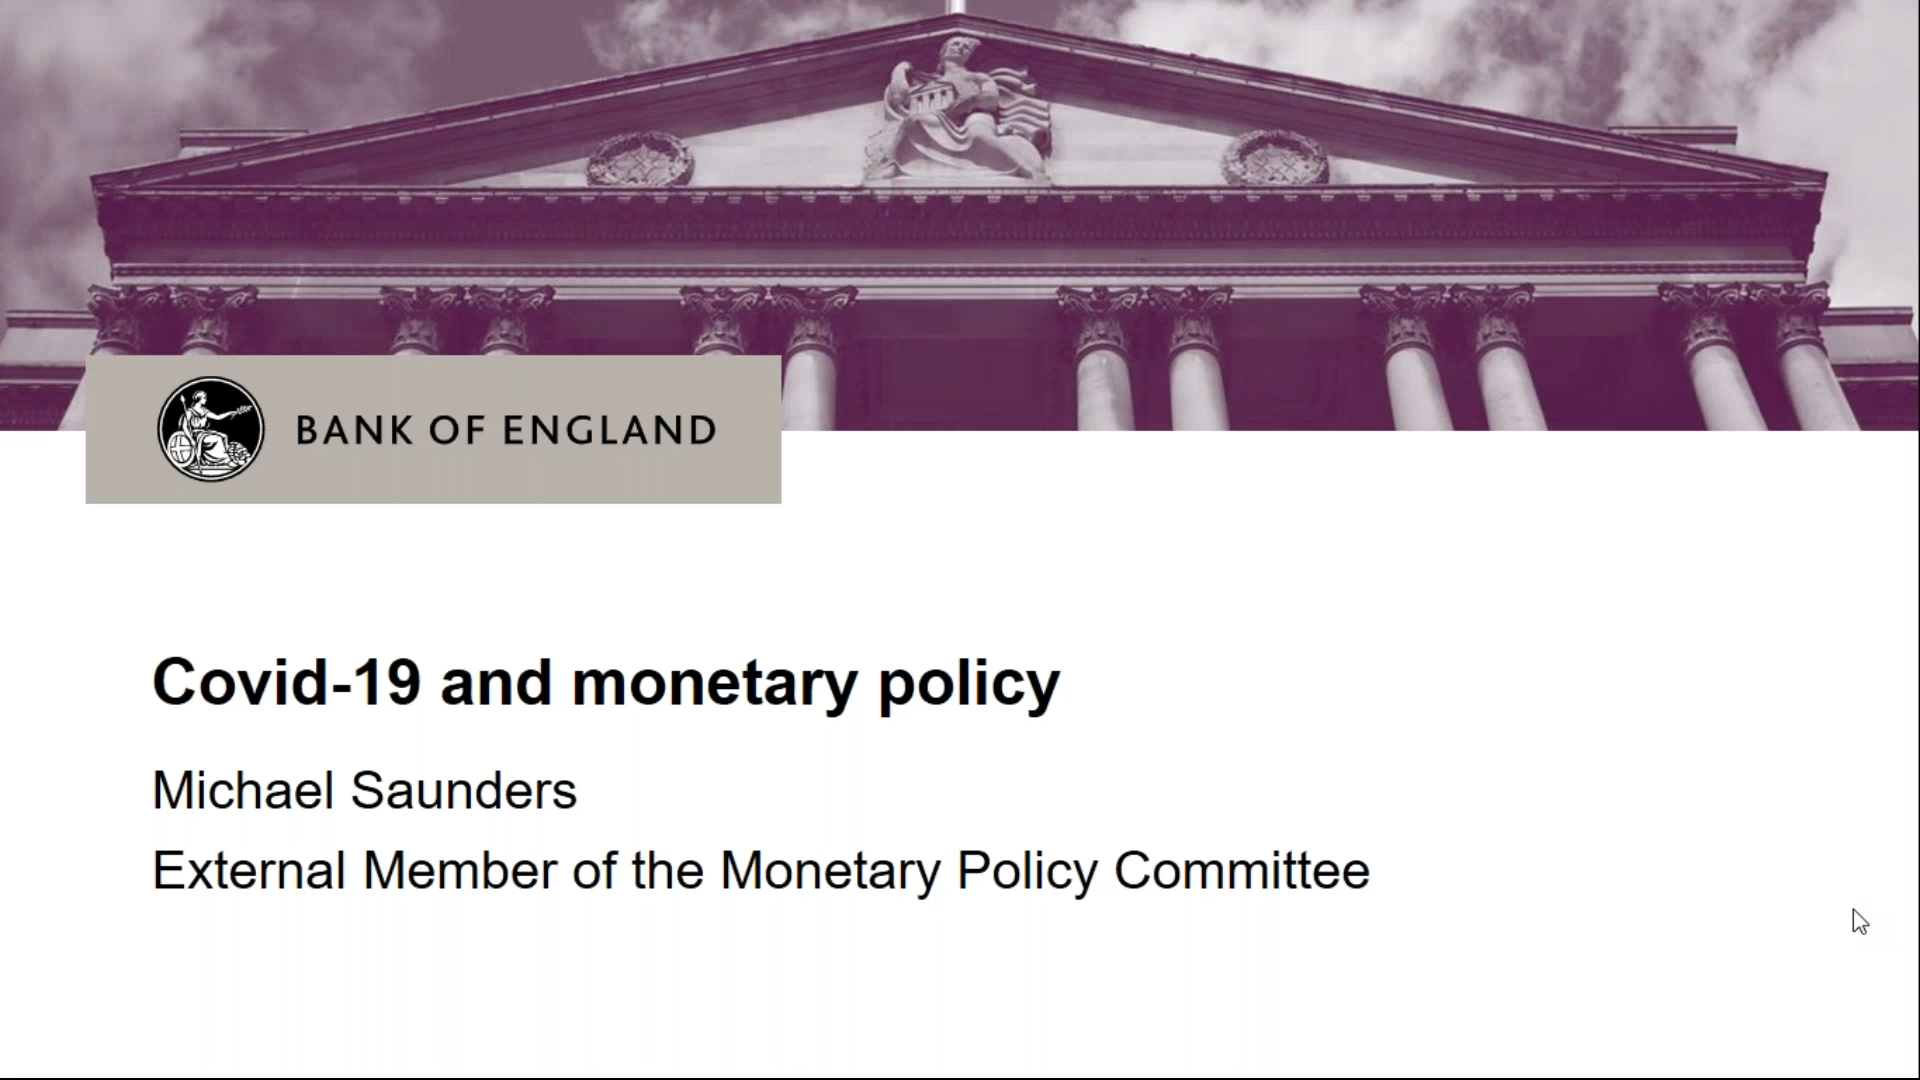 Covid19 and monetary policy - Michael Saunders speech